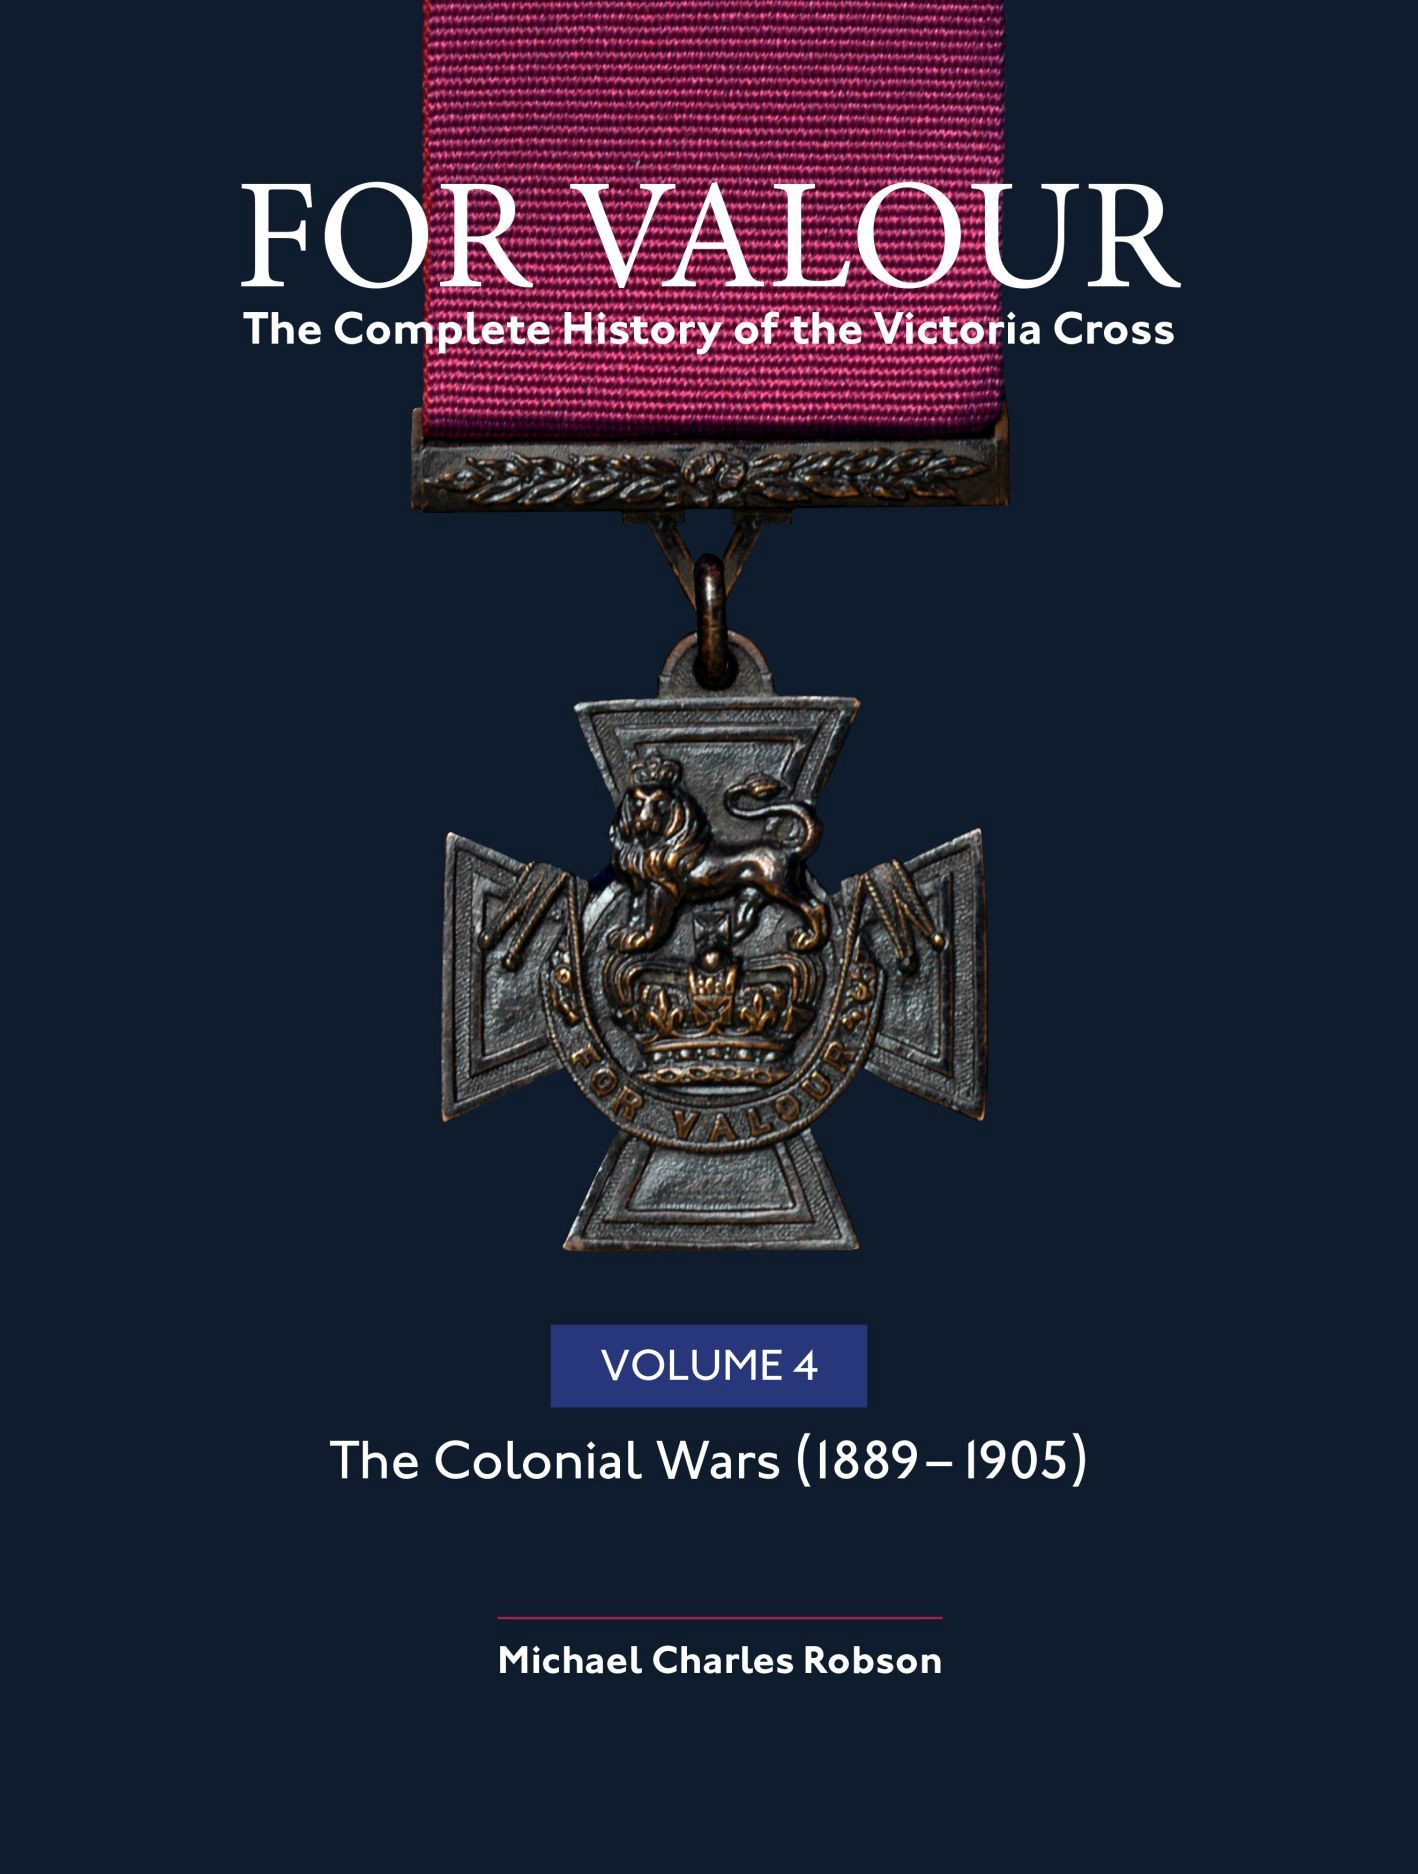 For Valour The Complete History of The Victoria Cross: Volume 4: The Colonial Wars, 1889-1905